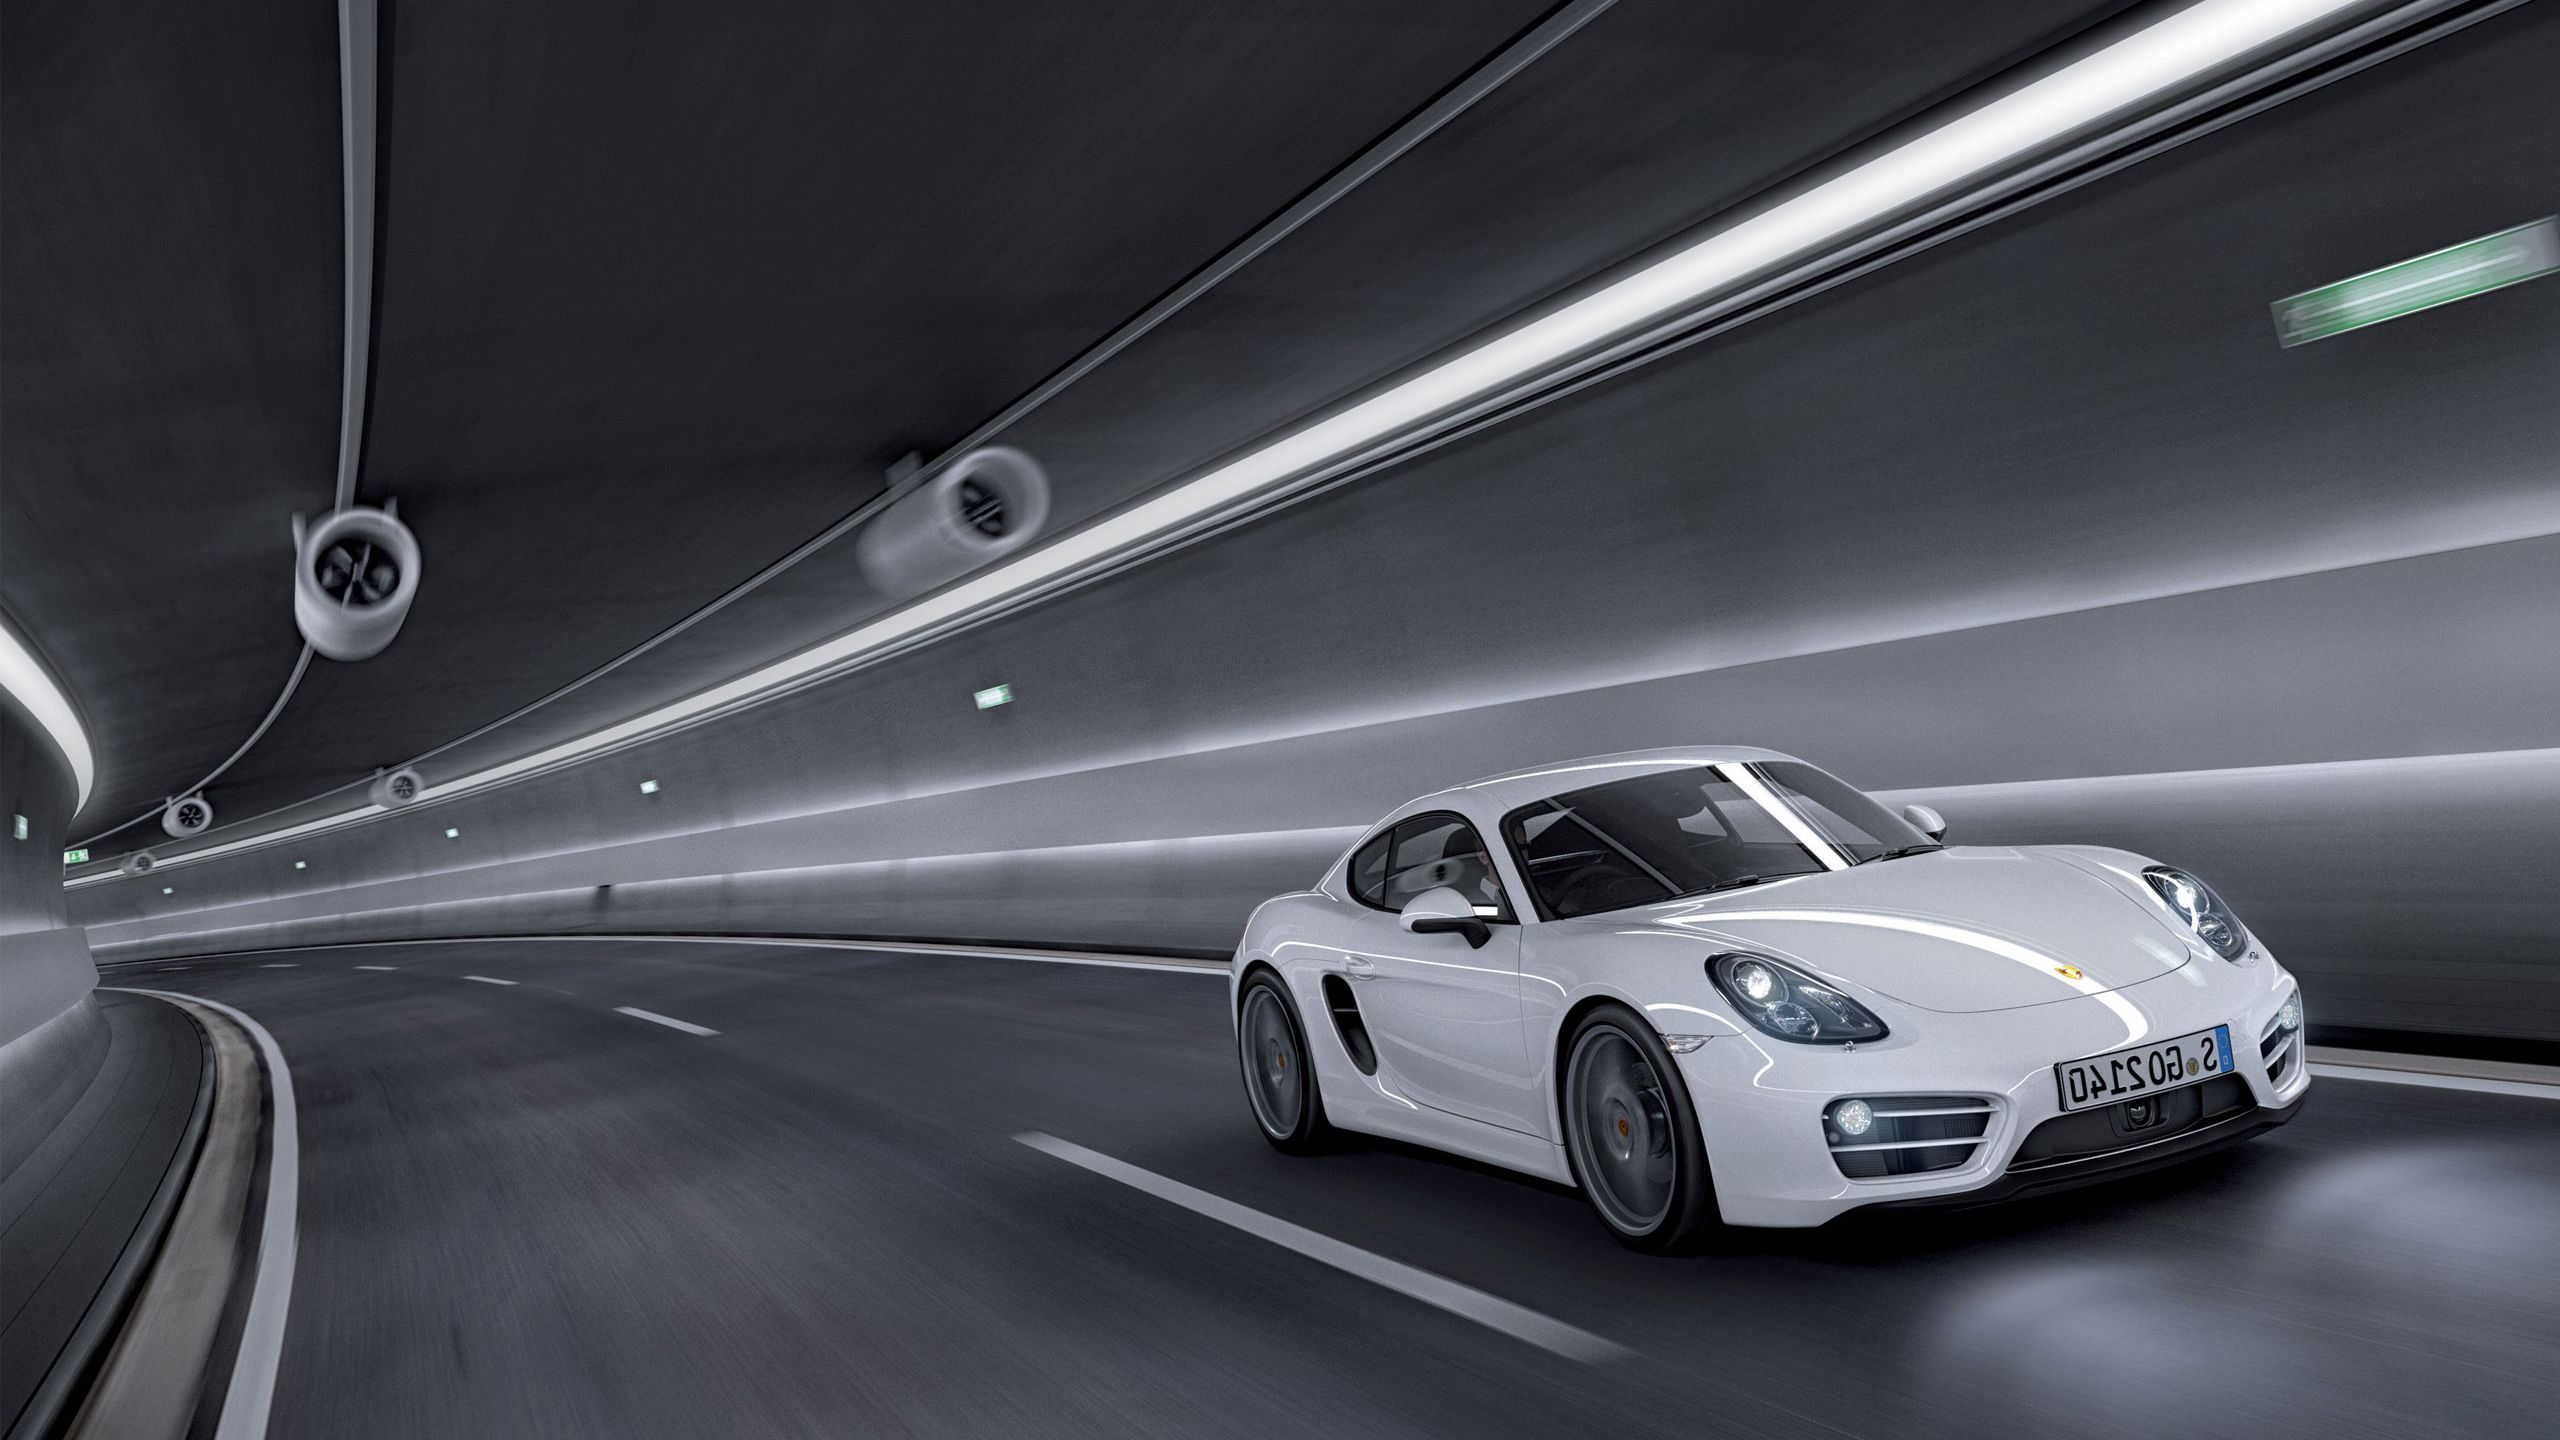 Pin By Philip On Cayman S Cayman Car Car Wallpapers Porsche